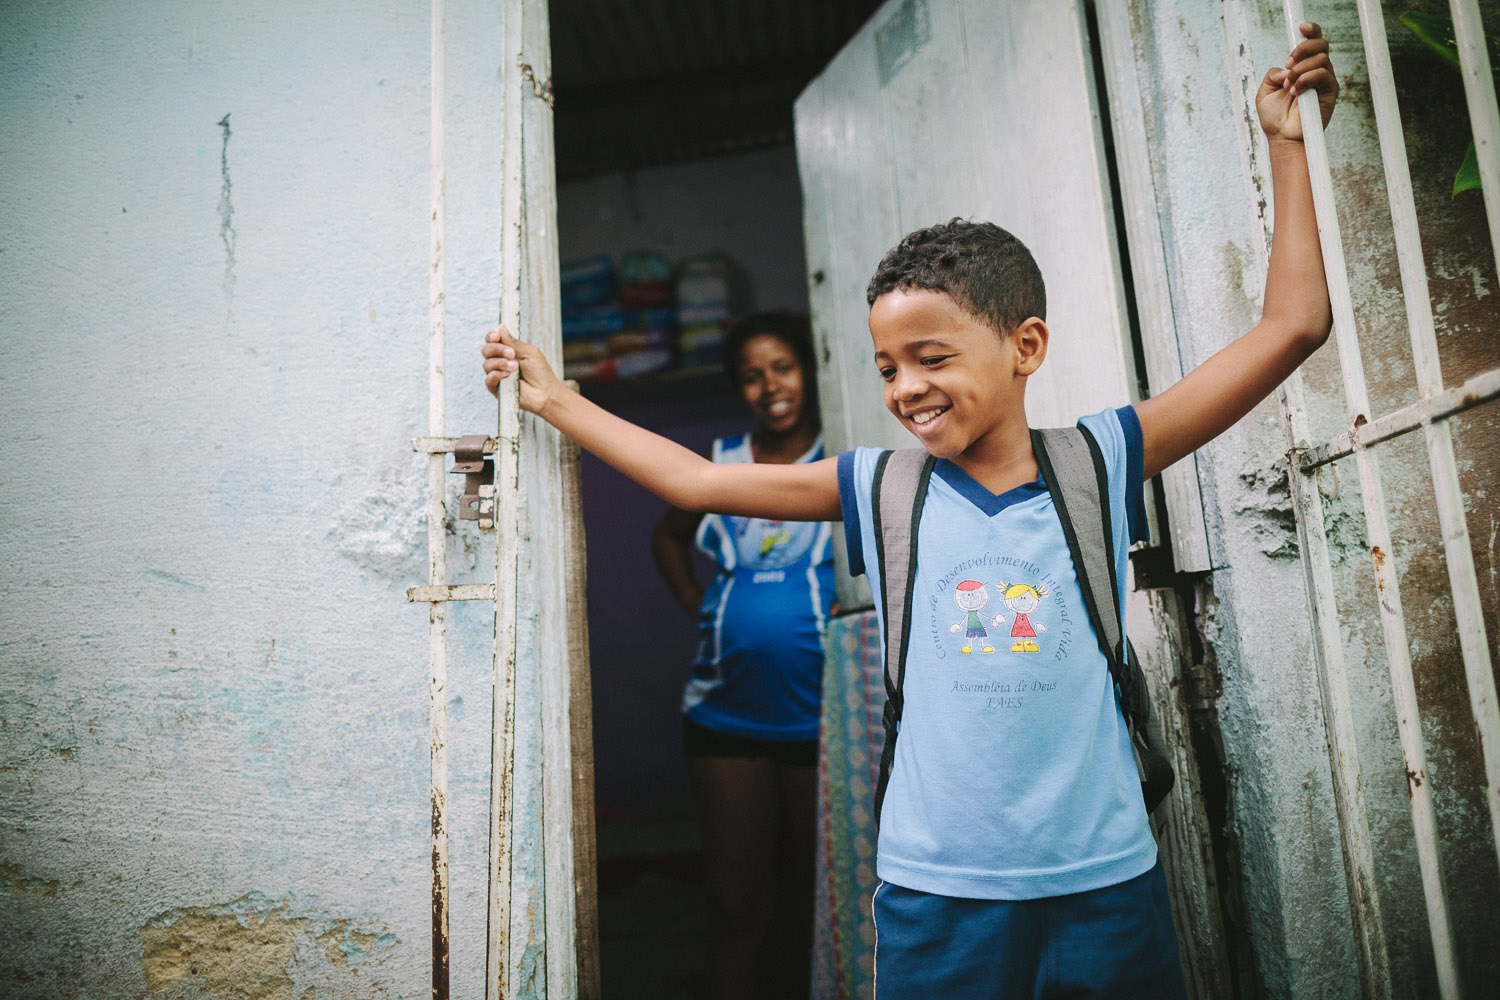 Getting ready to head to classes at the Compassion Center. Emidio's entire house (housing 4 people---soon to be 5) is perhaps no larger than 8 feet by 10 feet. This is Emidio's morning routine before heading to classes at the Compassion Center.